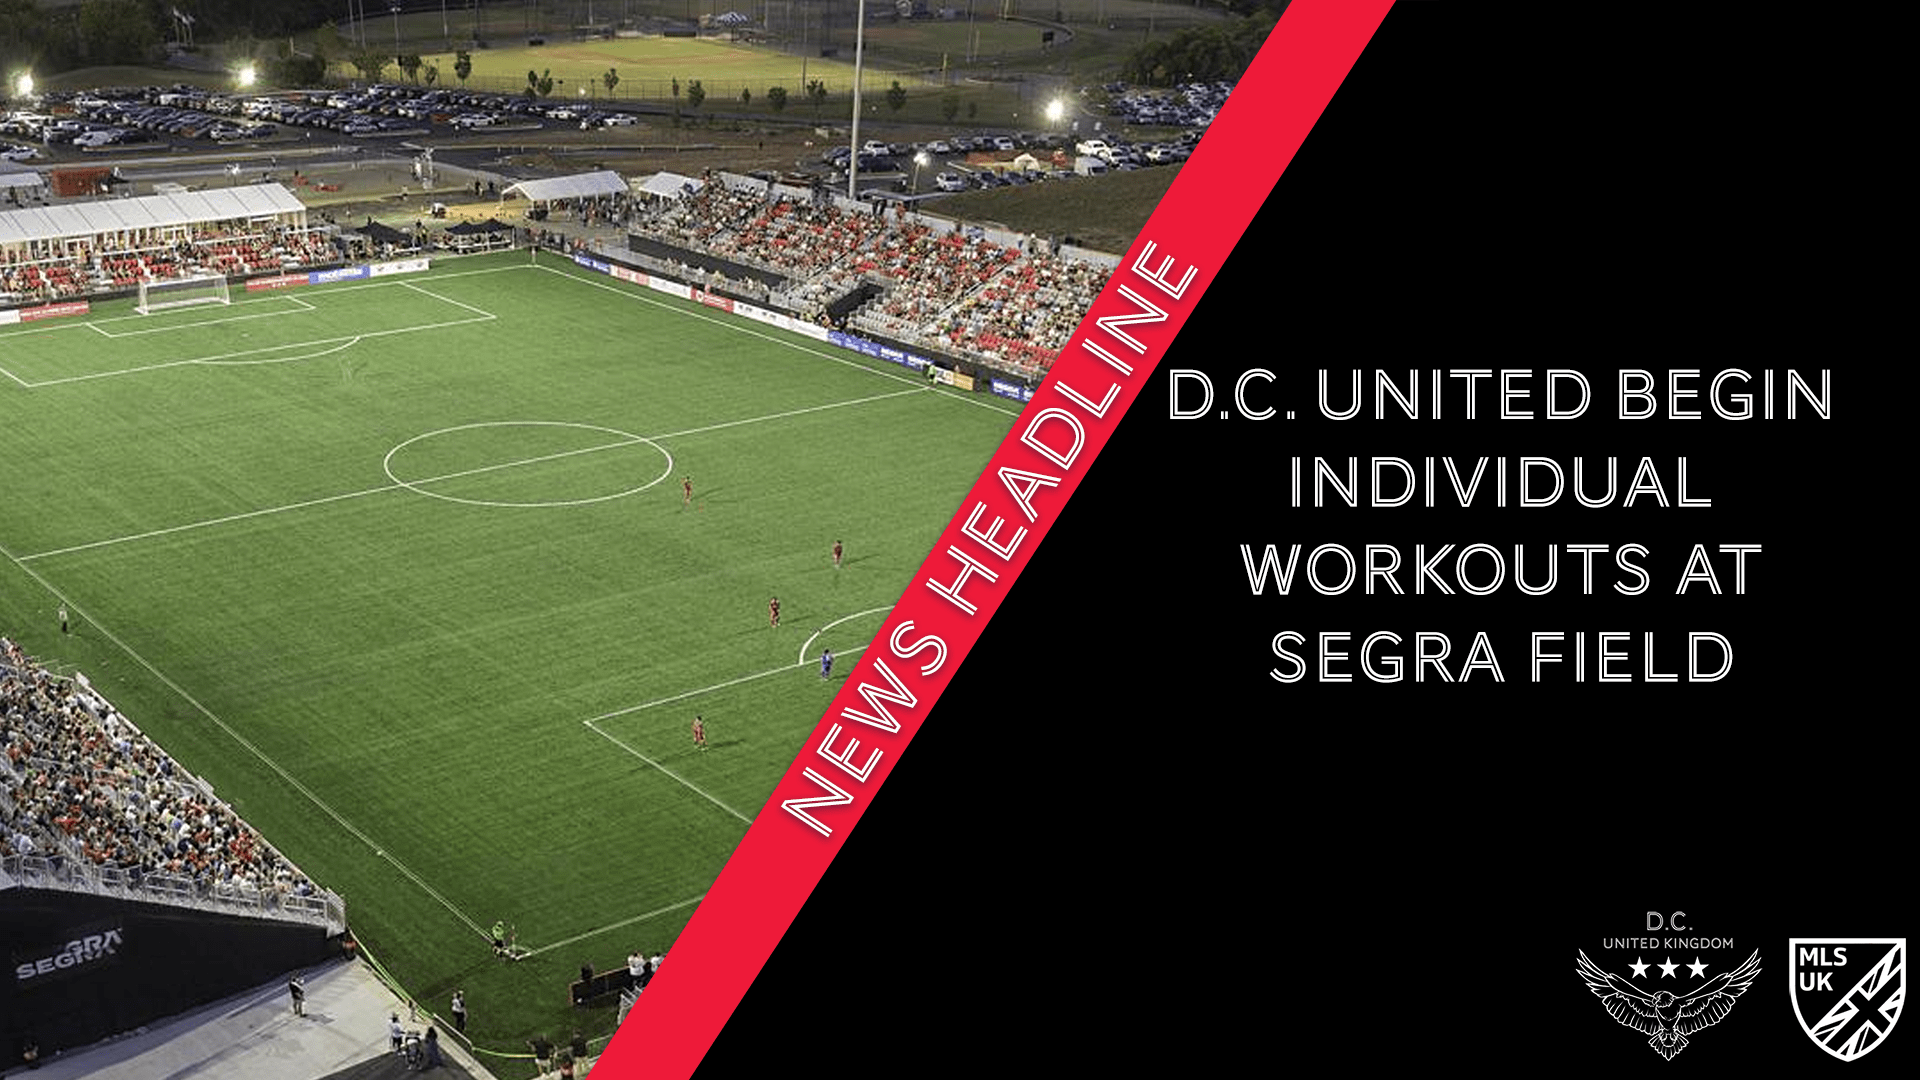 D.C. United Begin Individual Workouts at Segra Field